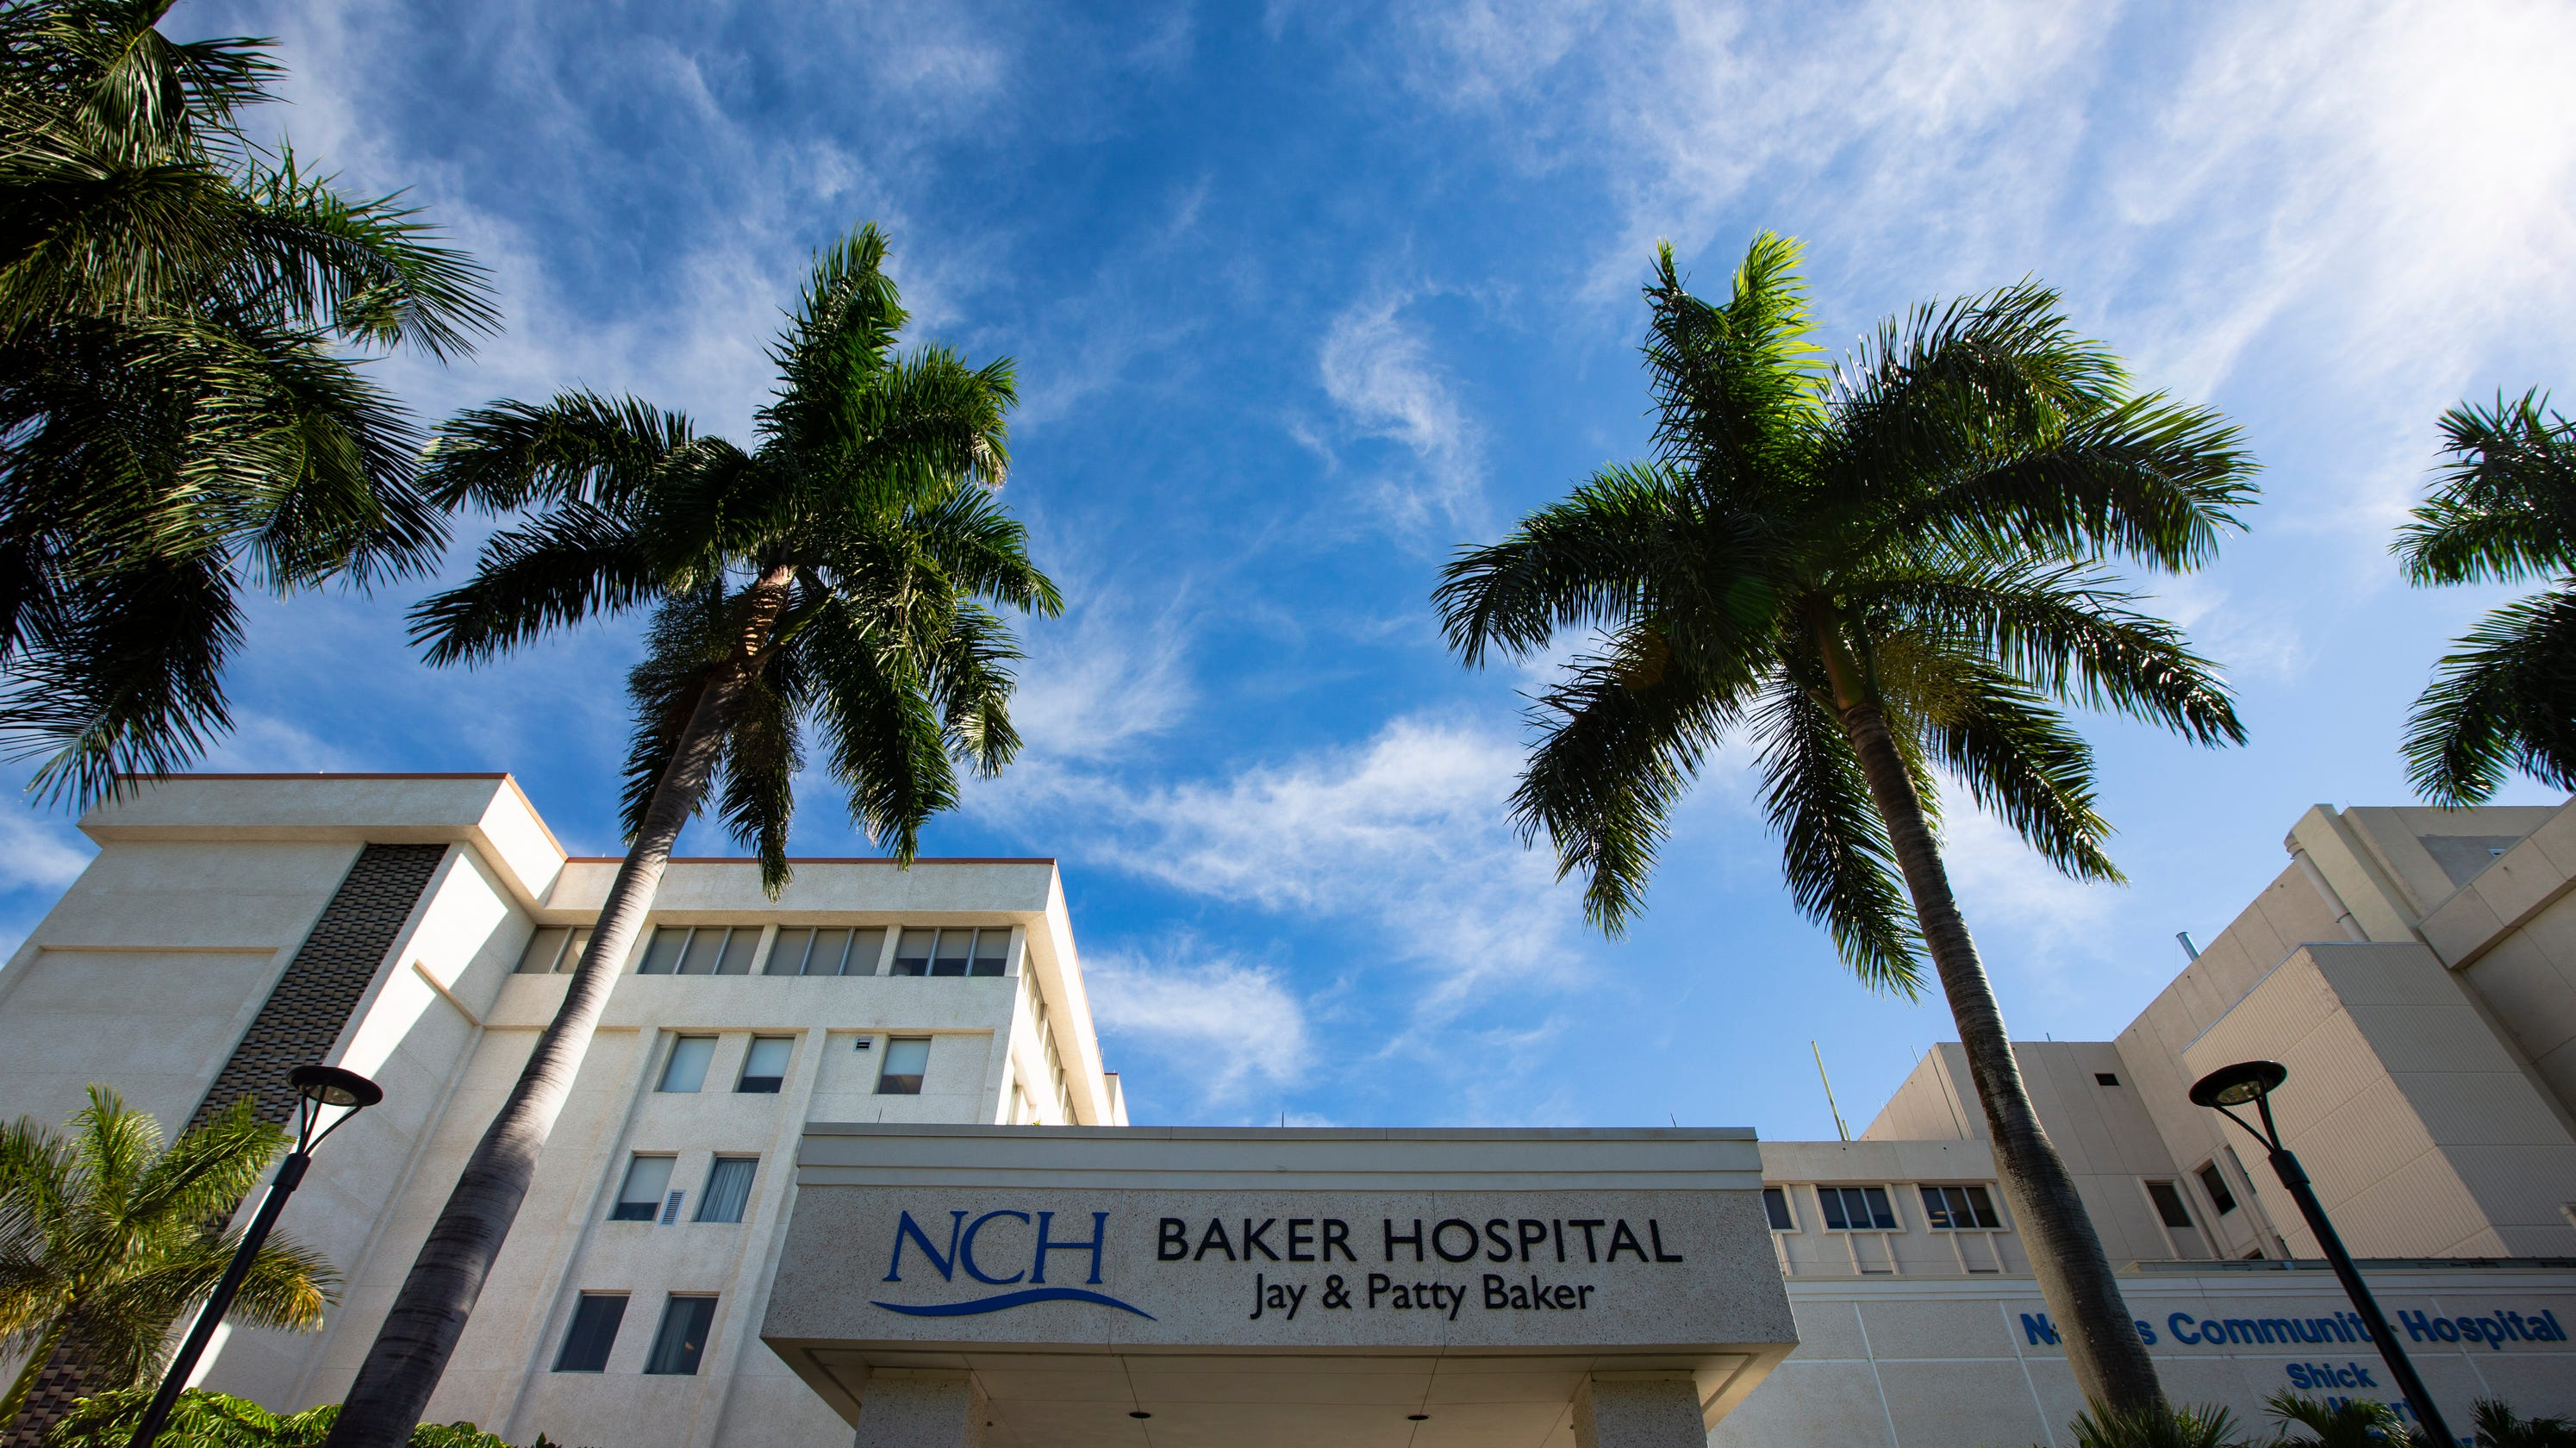 U S  News & World Report: NCH Baker Hospital Downtown ranks